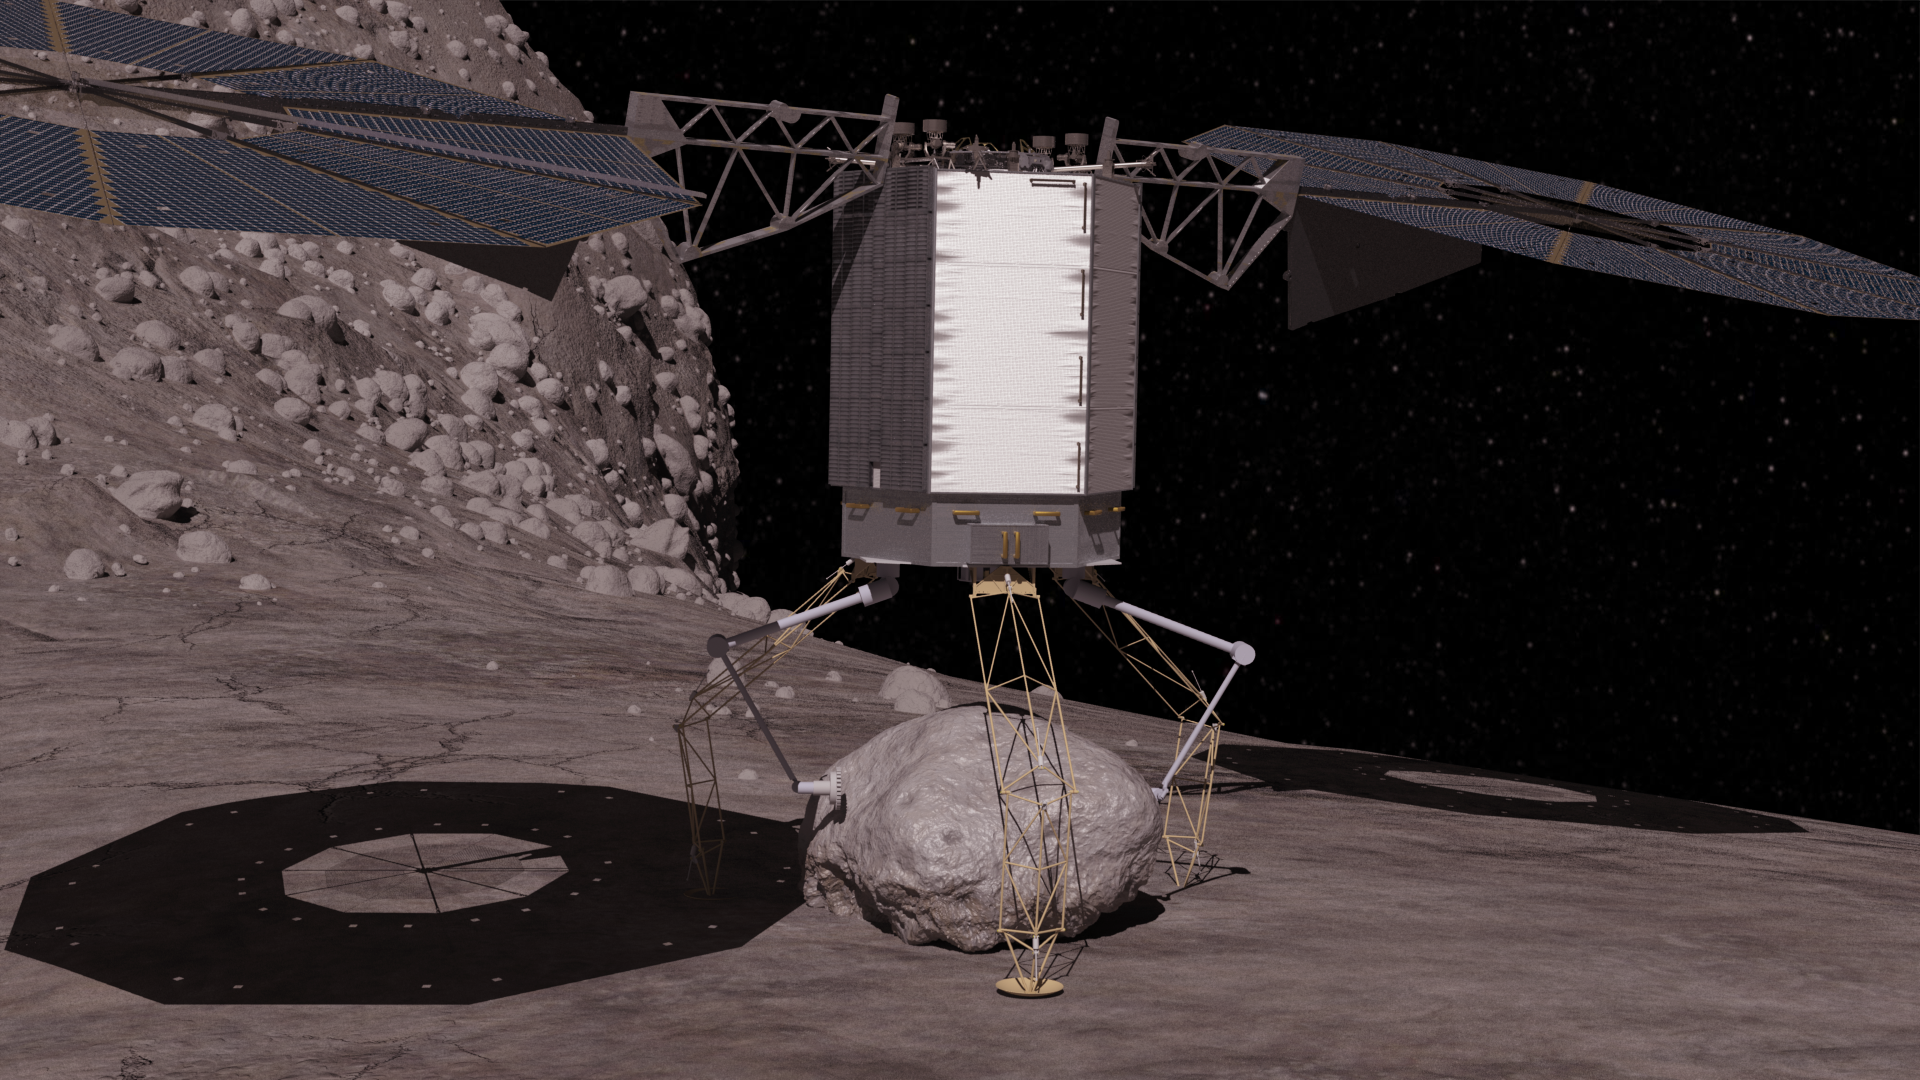 Asteroid Redirect Robotic Vehicle Concept Descends